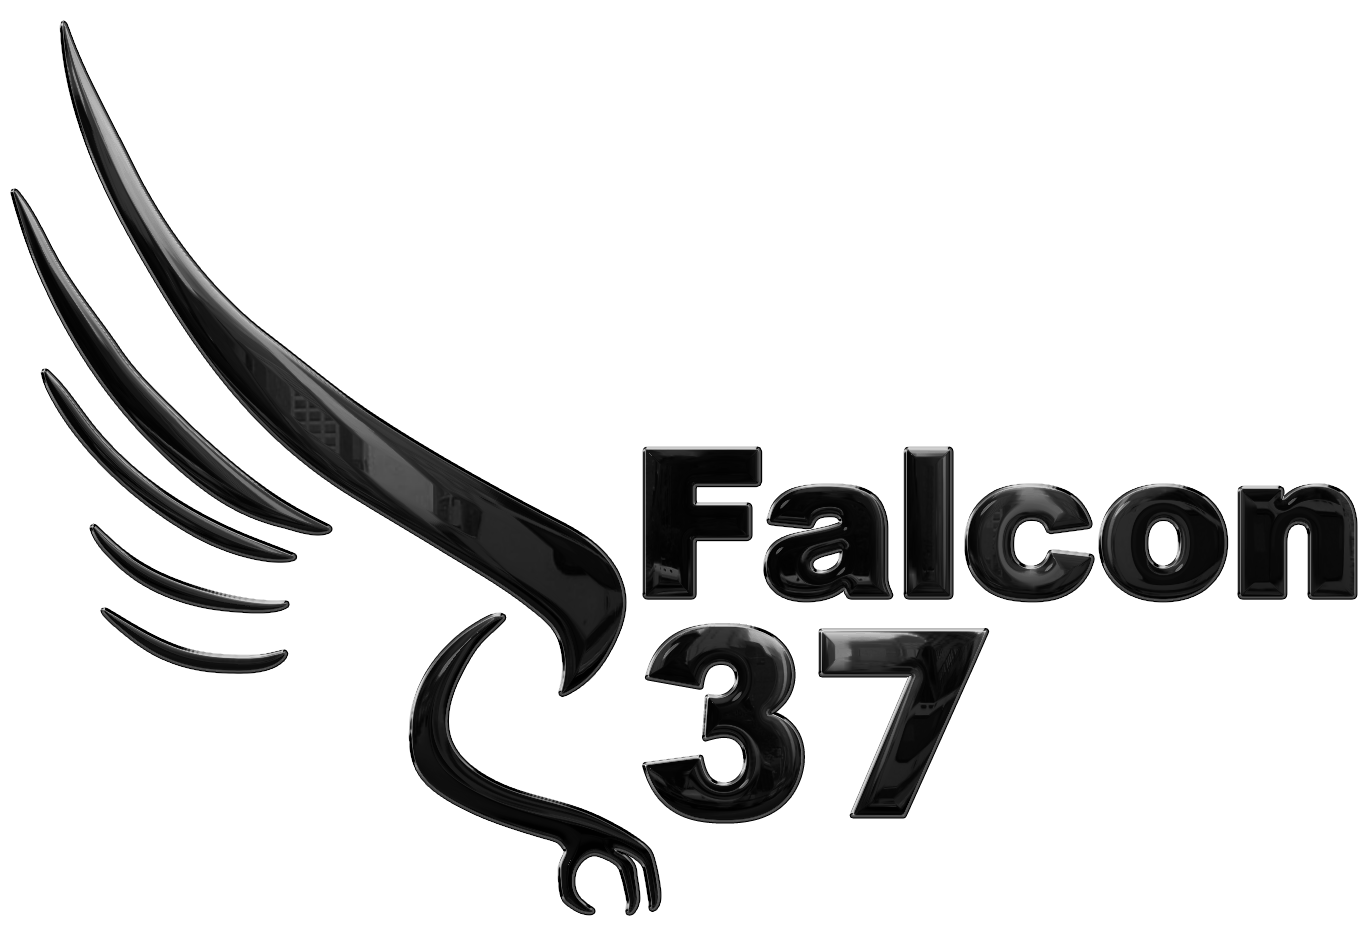 FALCON 37 Inc. logo